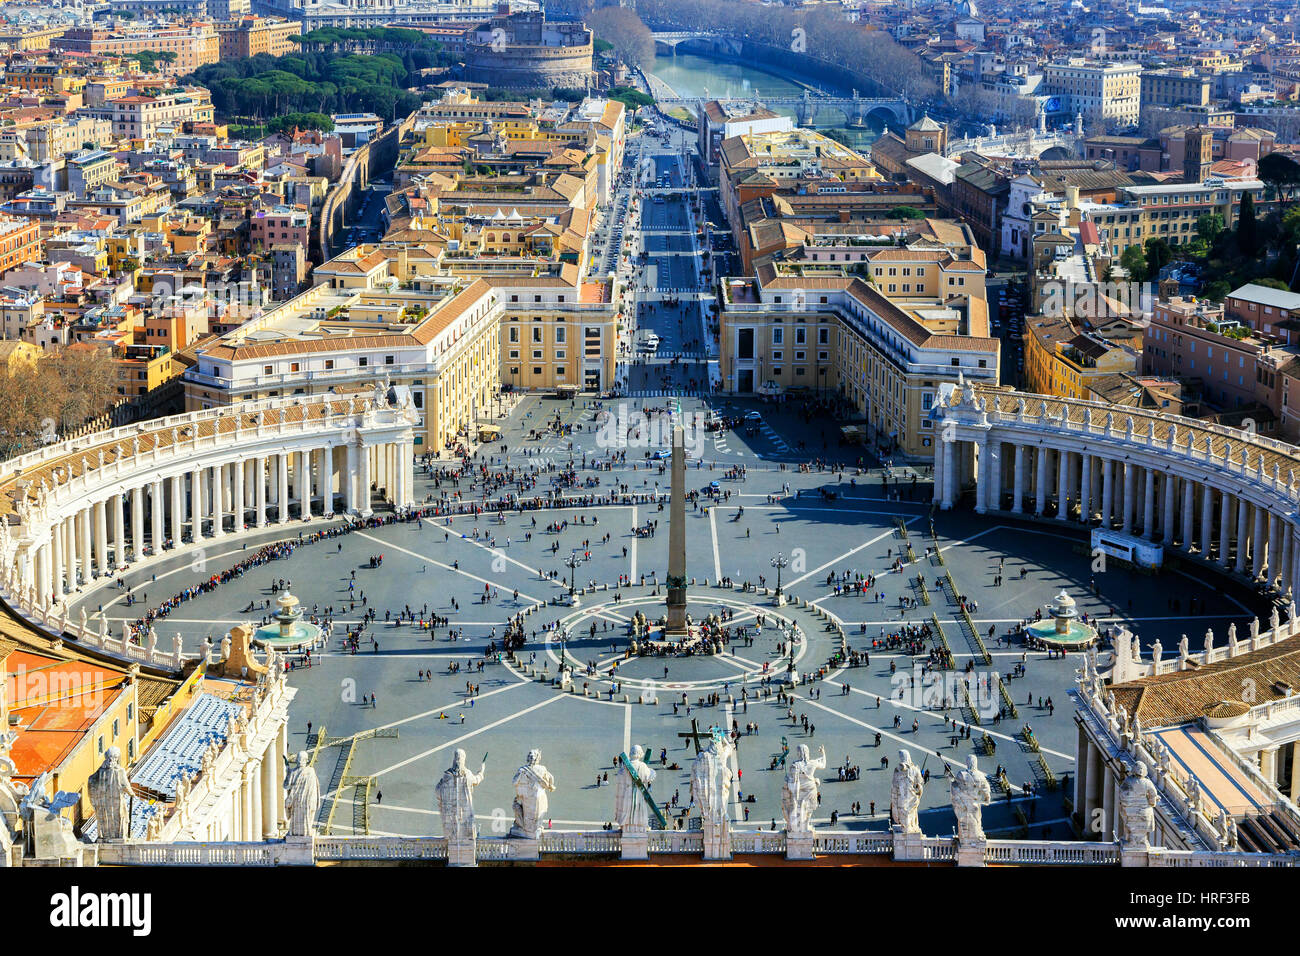 High View over St Peters square, Piazza di San Pietro, Vatican City, Rome, Italy - Stock Image